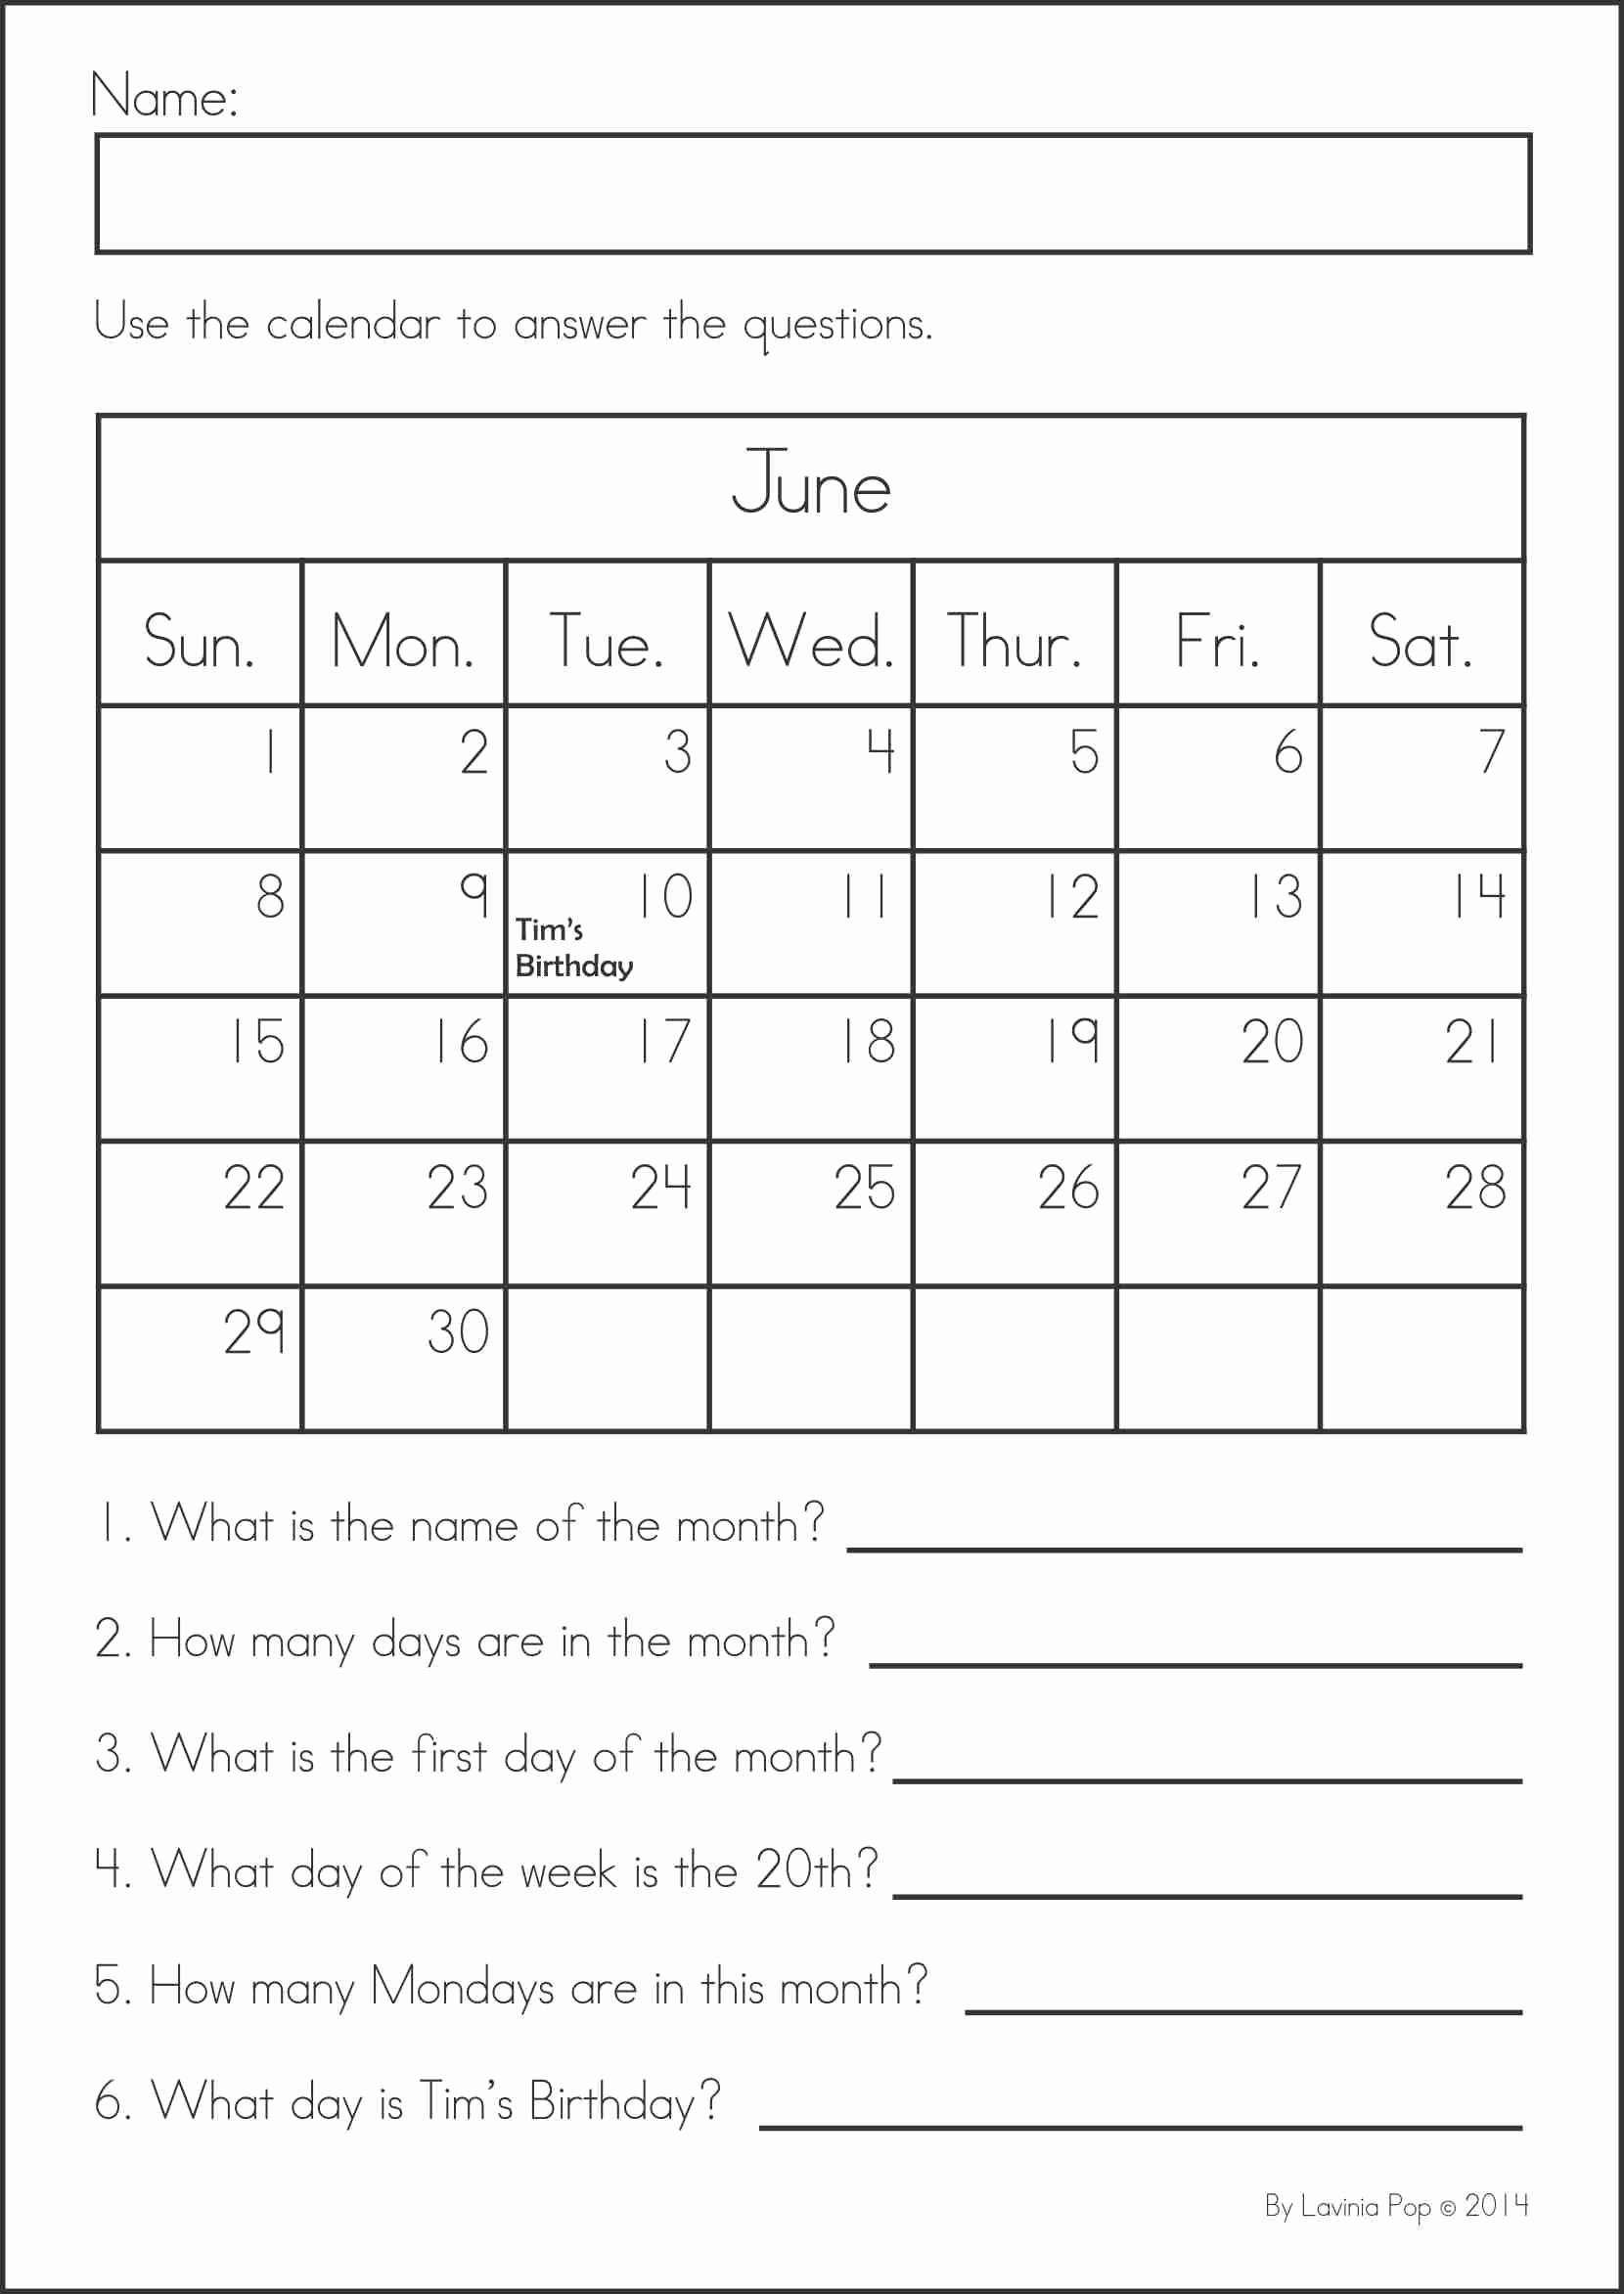 June Worksheets for Preschoolers New Summer Review Kindergarten Math & Literacy Worksheets